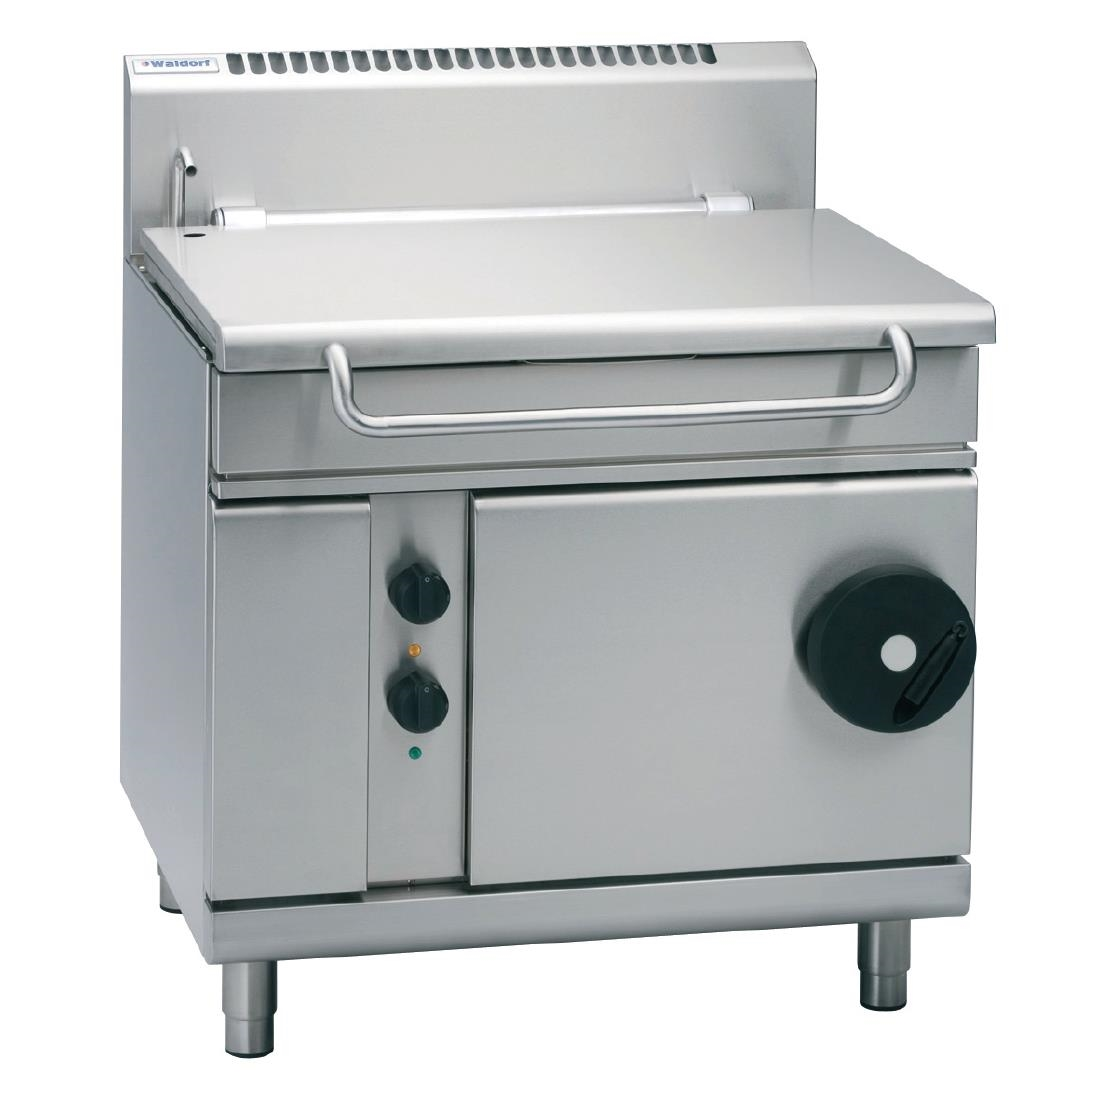 Waldorf by Moffat 900mm 80 Ltr Bratt Pan with Manual Tilt Natural Gas BP8080G